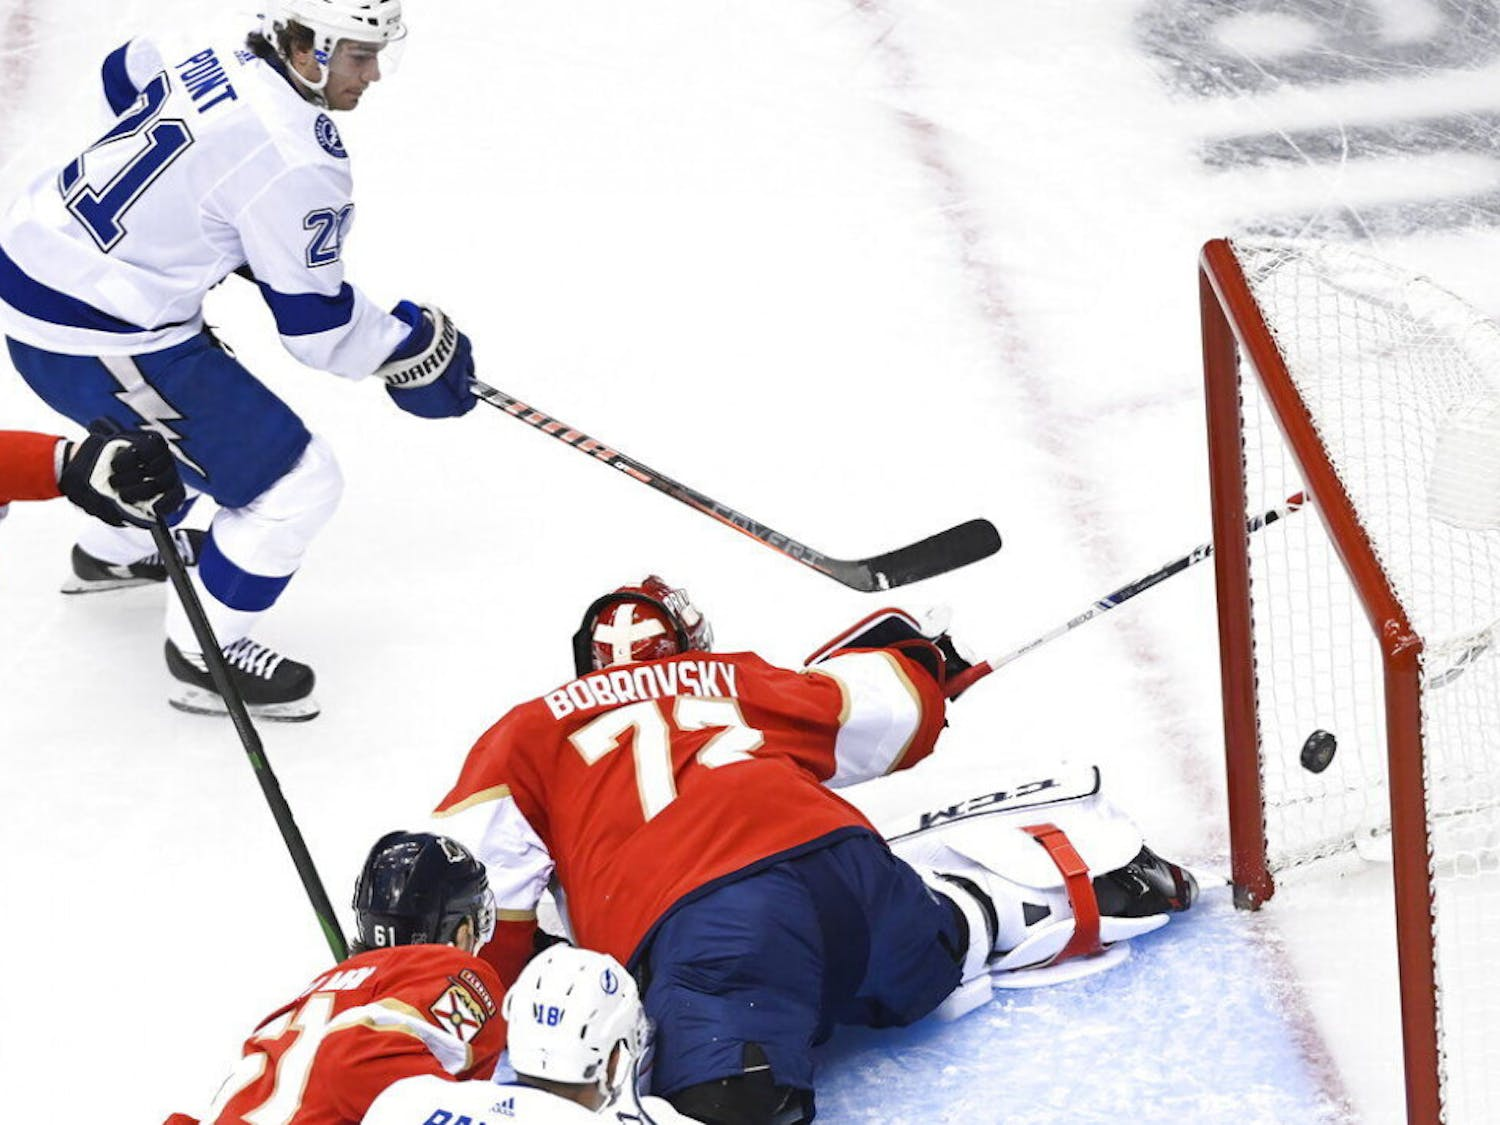 Tampa Bay Lightning center Brayden Point (21) scores past Florida Panthers goaltender Sergei Bobrovsky (72) during the first period of an exhibition NHL hockey game in Toronto, Wednesday, July 29, 2020. (Nathan Denette/The Canadian Press via AP)